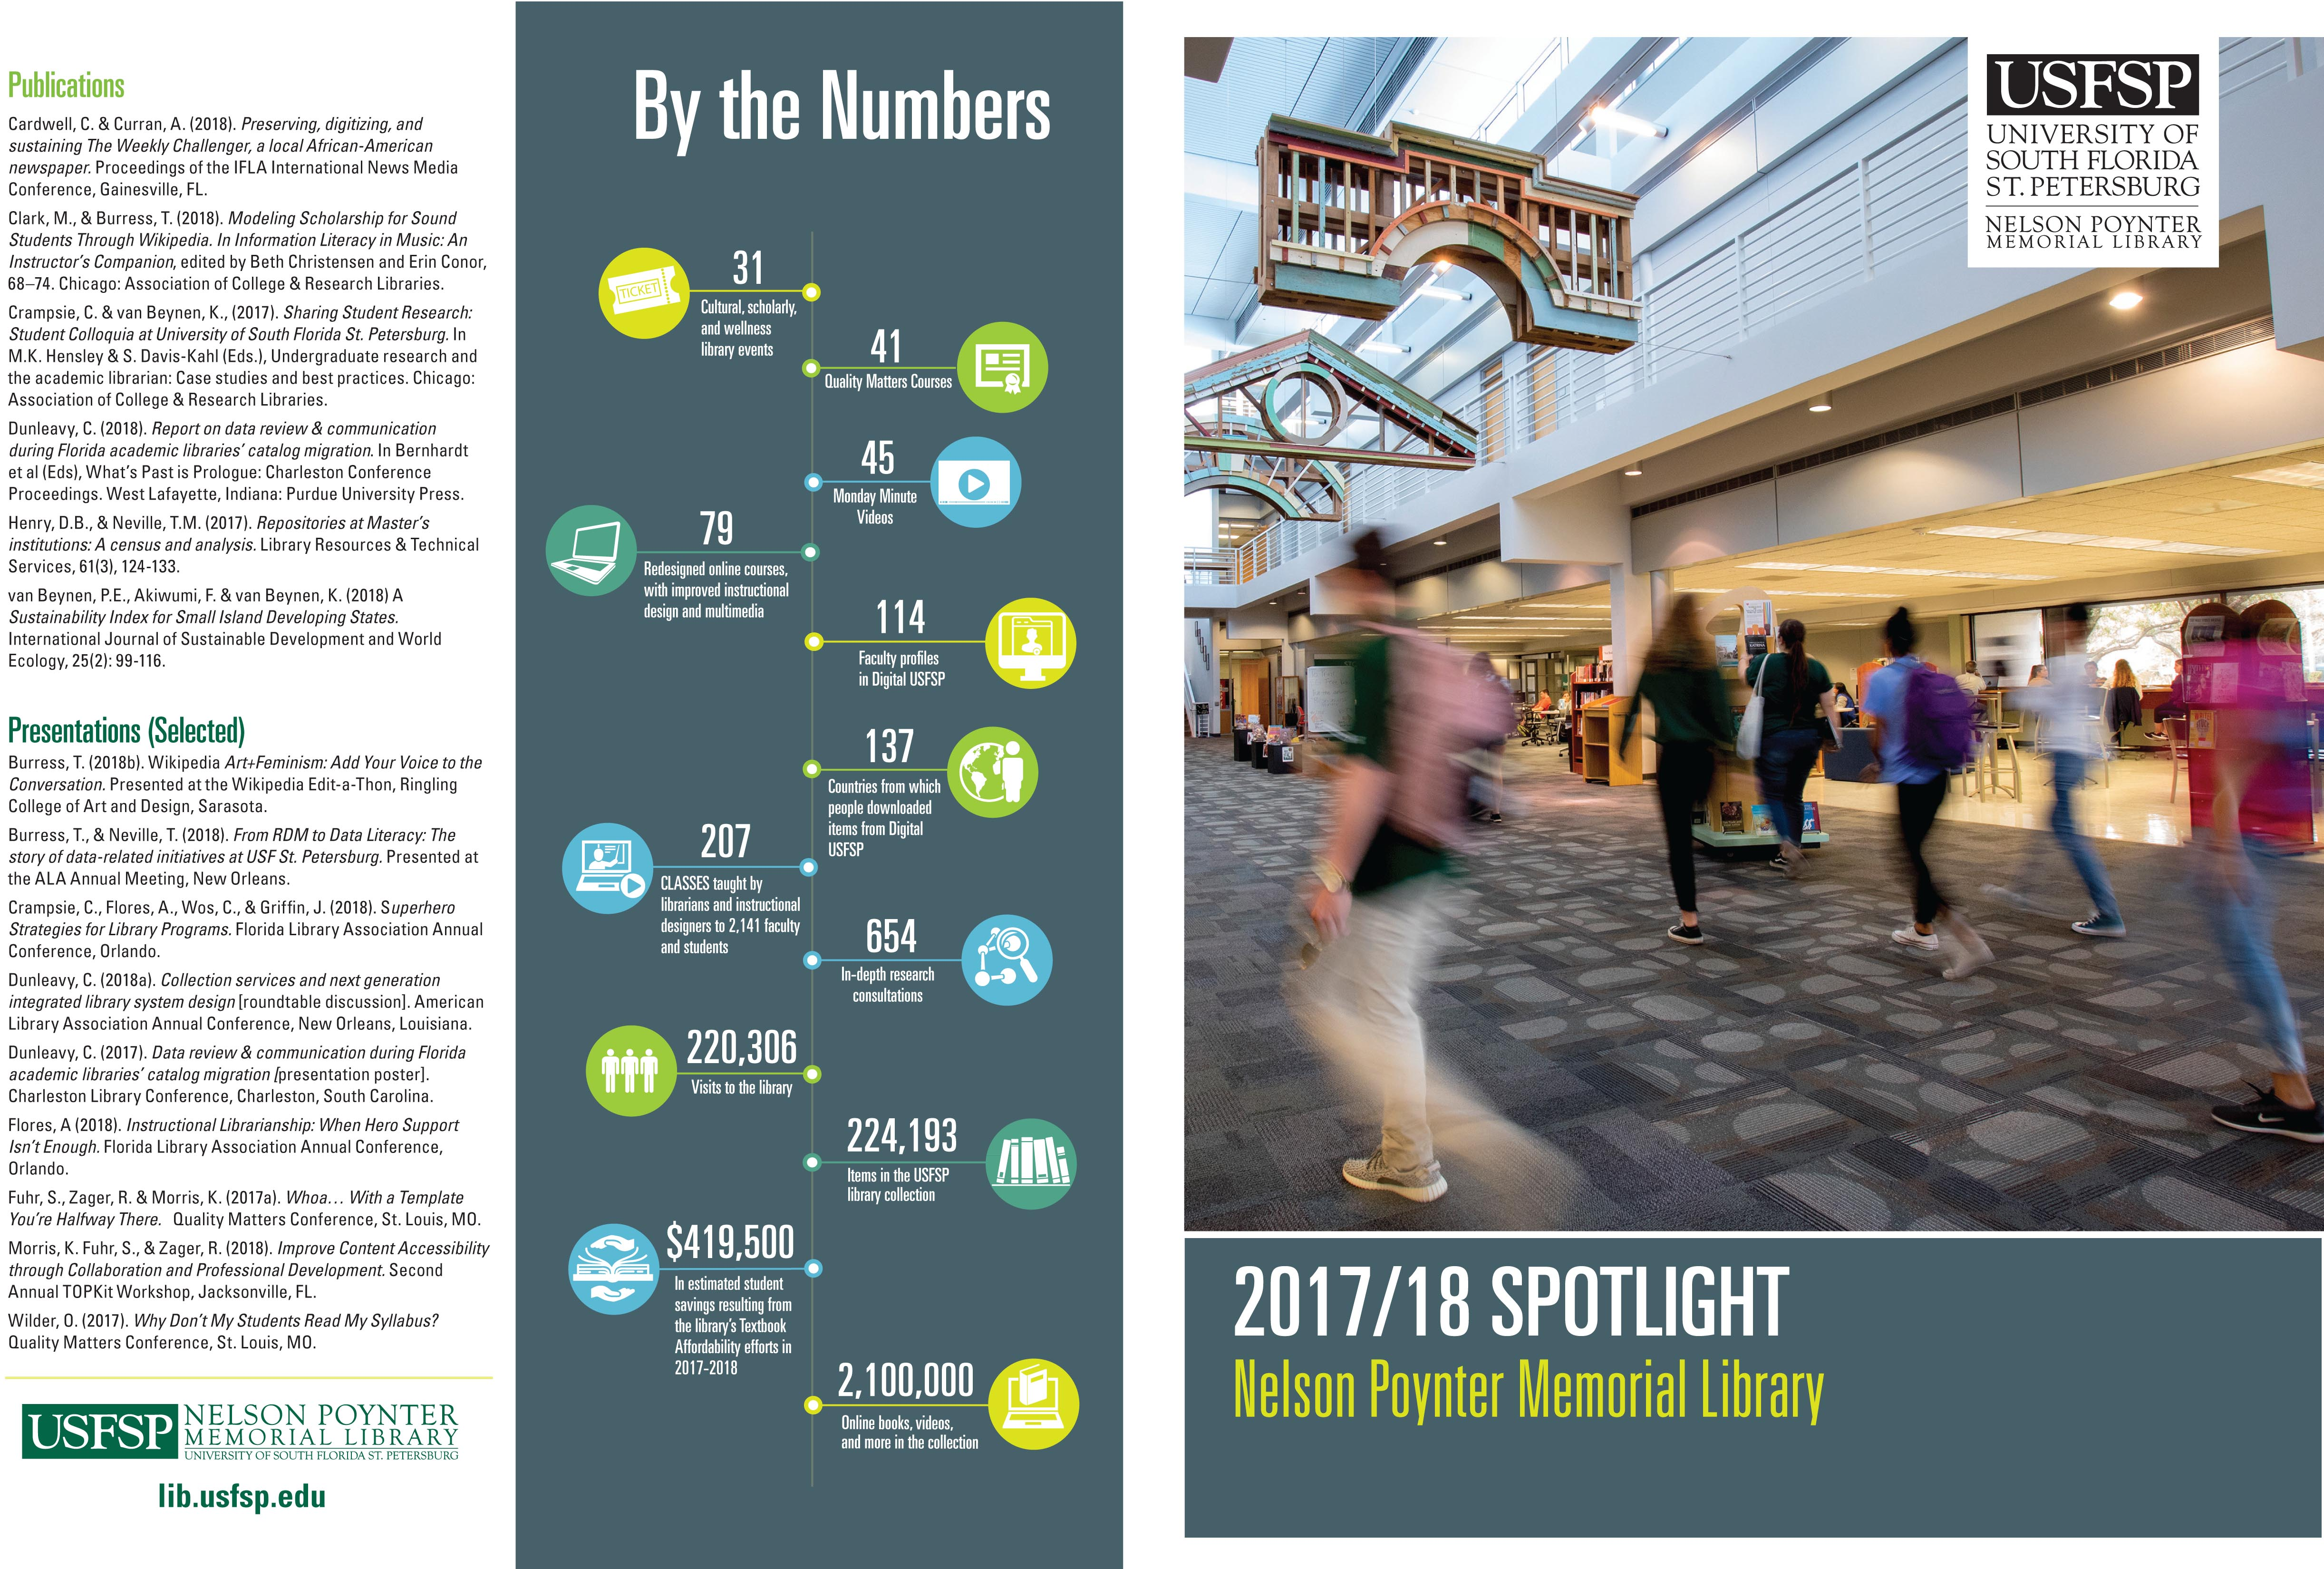 Photo of library atrium and list of 2017/18 publications & presenations